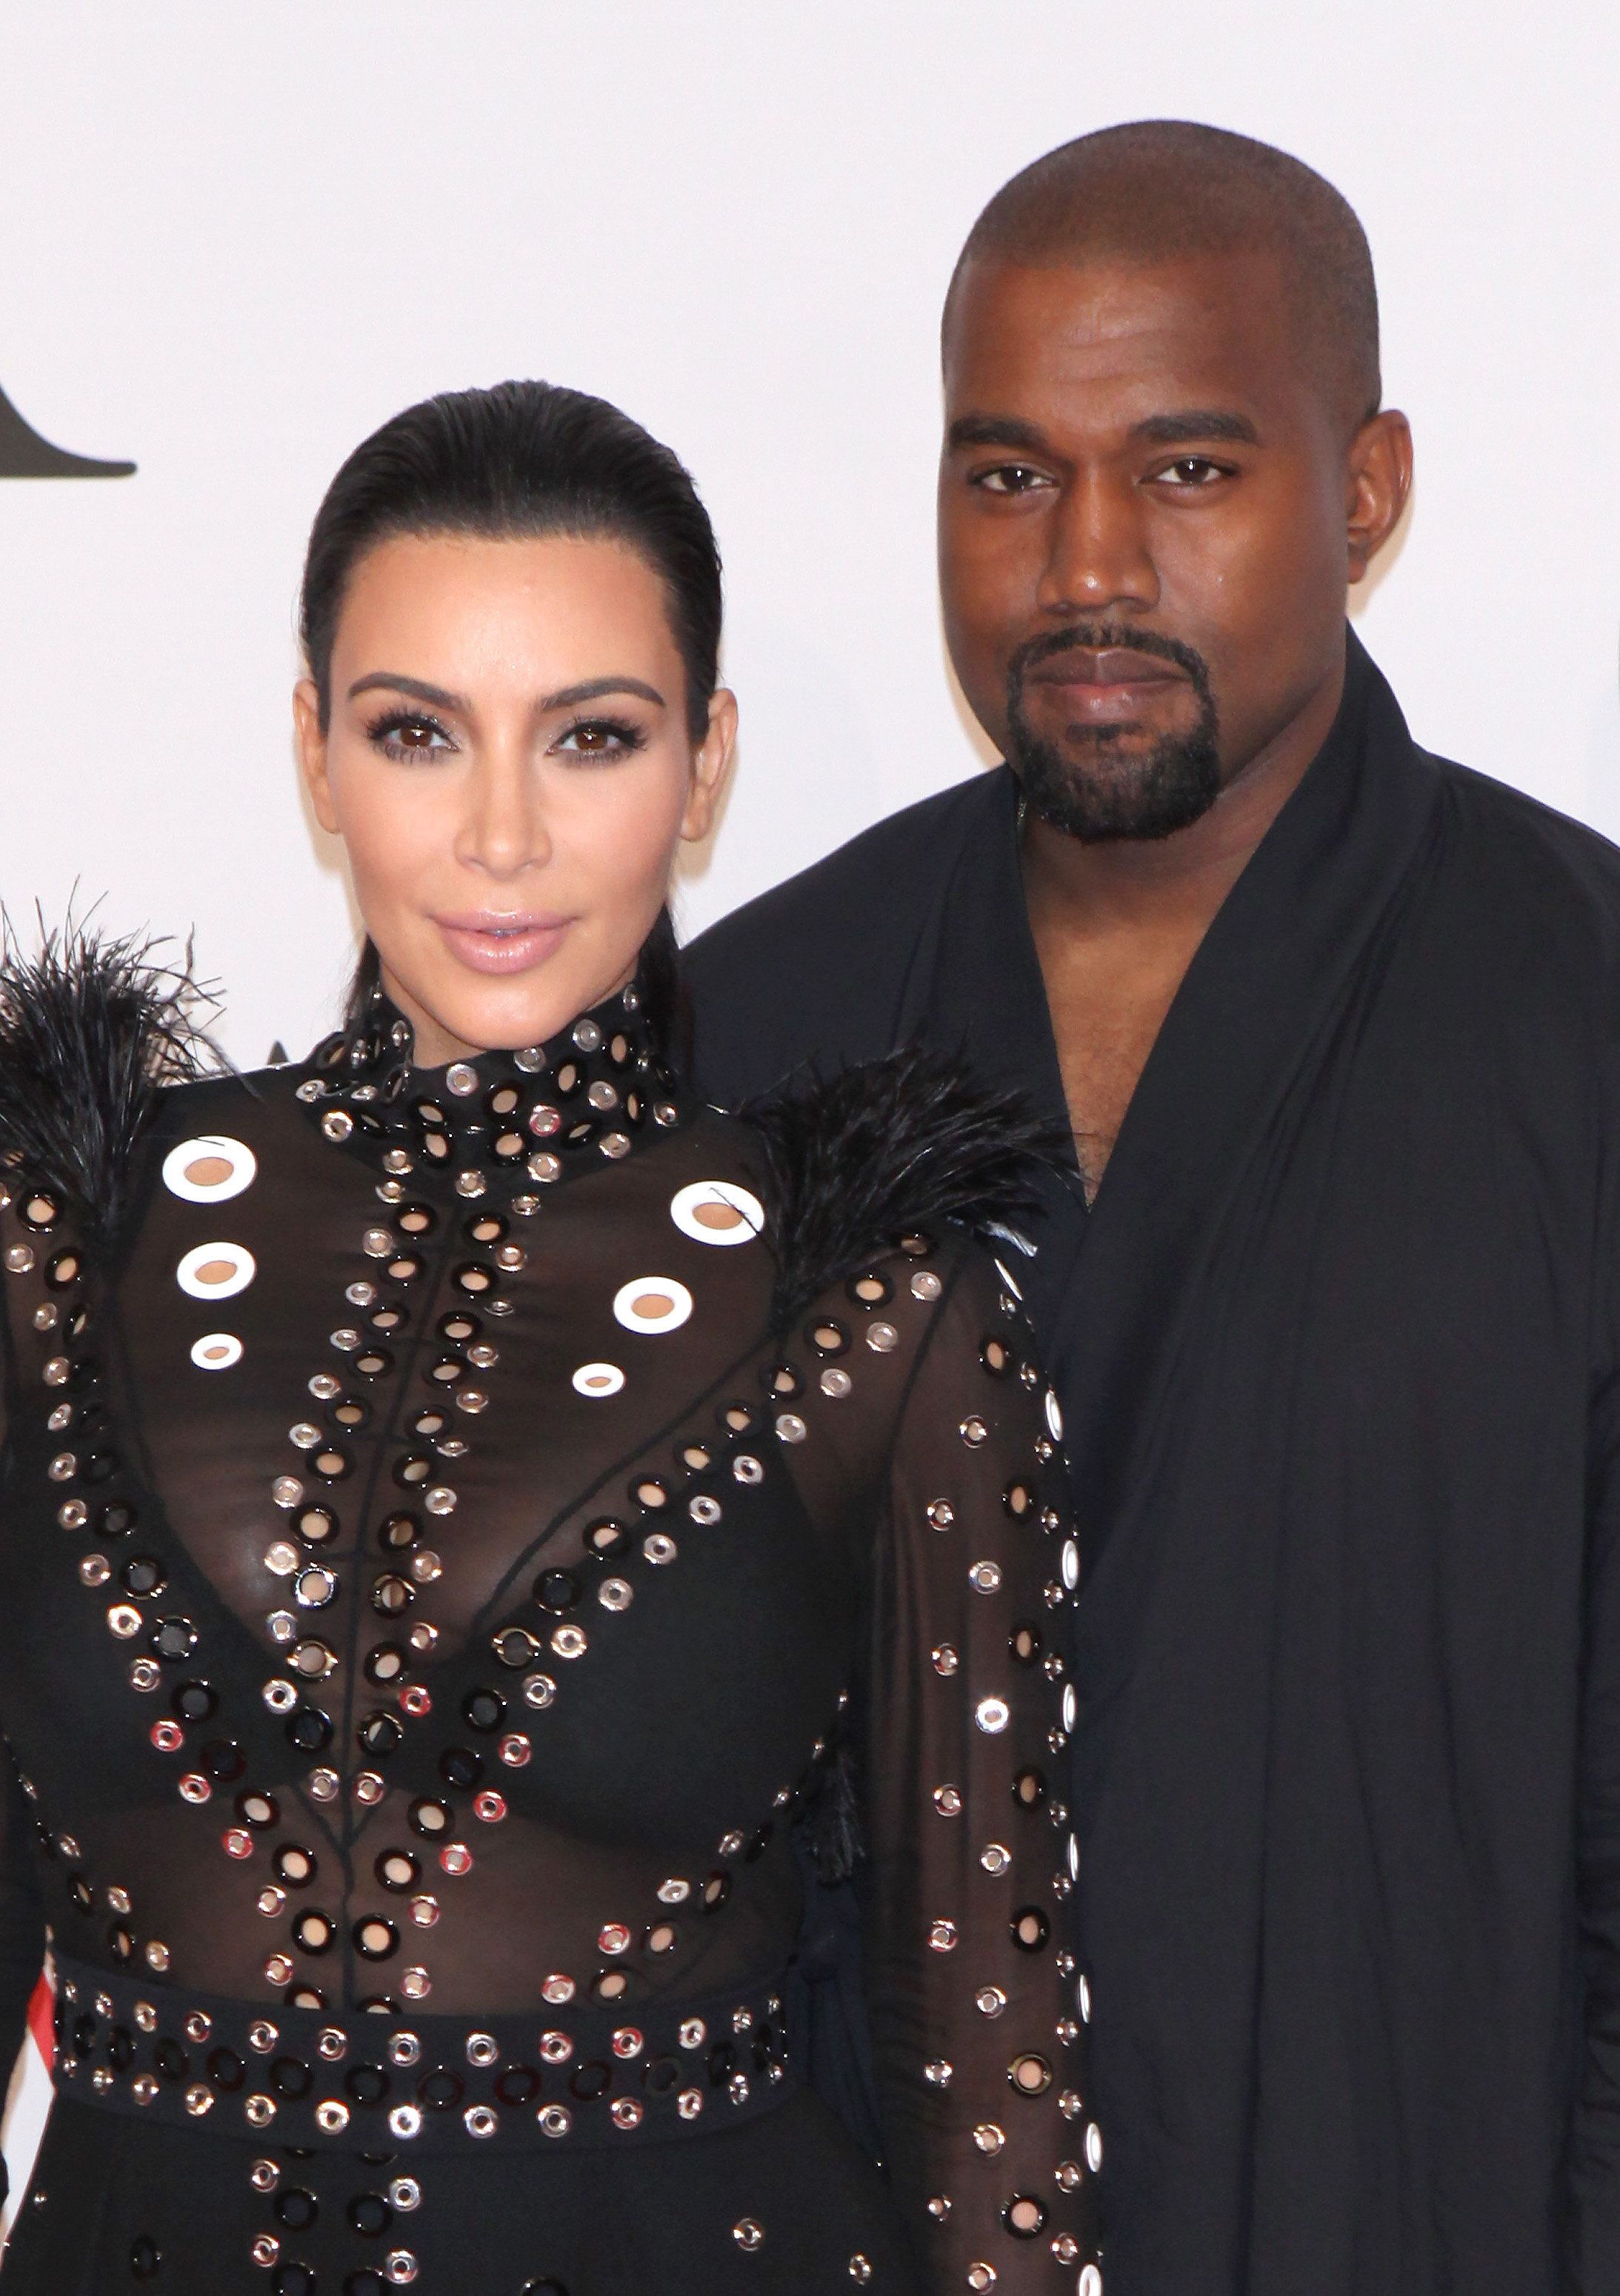 NEW YORK, NY - JUNE 1: Kim Kardashian and Kanye West at the 2015 CFDA Fashion Awards at Alice Tully Hall, Lincoln Center in New York City on June 1, 2015. Credit: Diego Corredor/MediaPunch/IPX